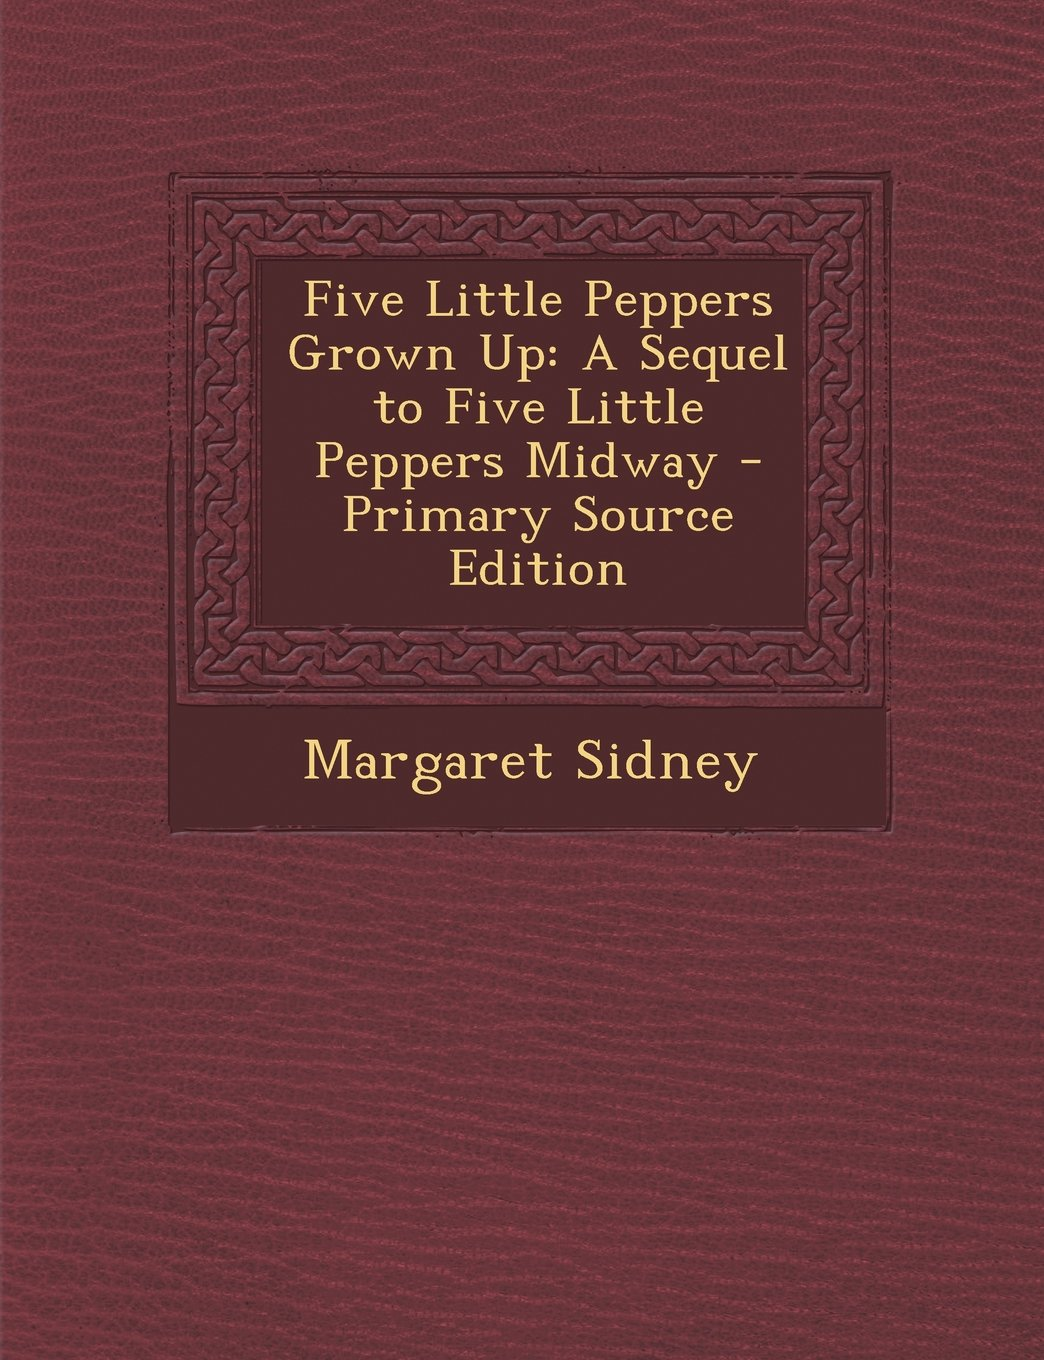 Five Little Peppers Grown Up: A Sequel to Five Little Peppers Midway ebook